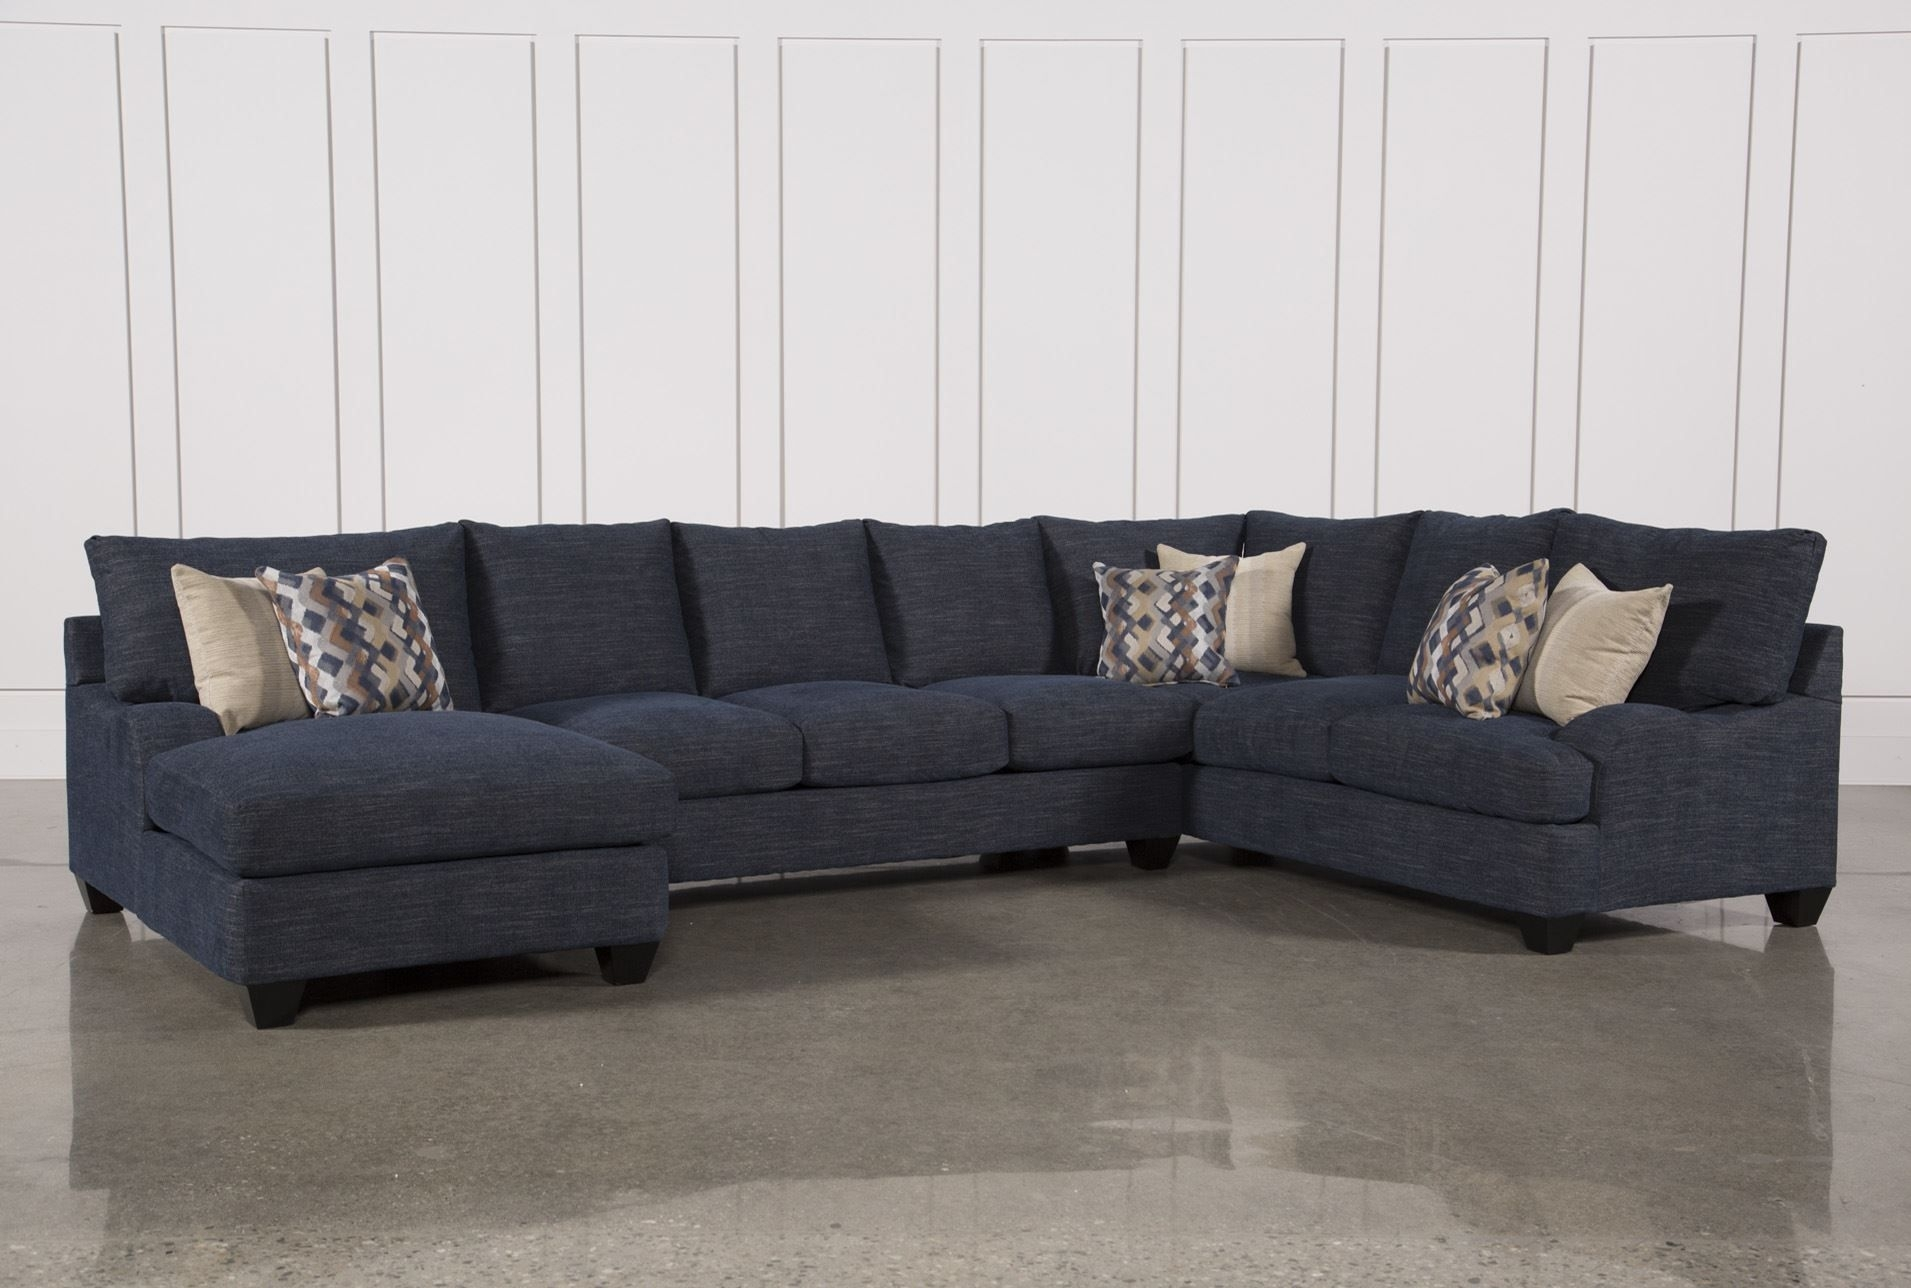 Sierra Down 3 Piece Sectional W/laf Chaise | Sofas And Sectionals in Mesa Foam 2 Piece Sectionals (Image 26 of 30)